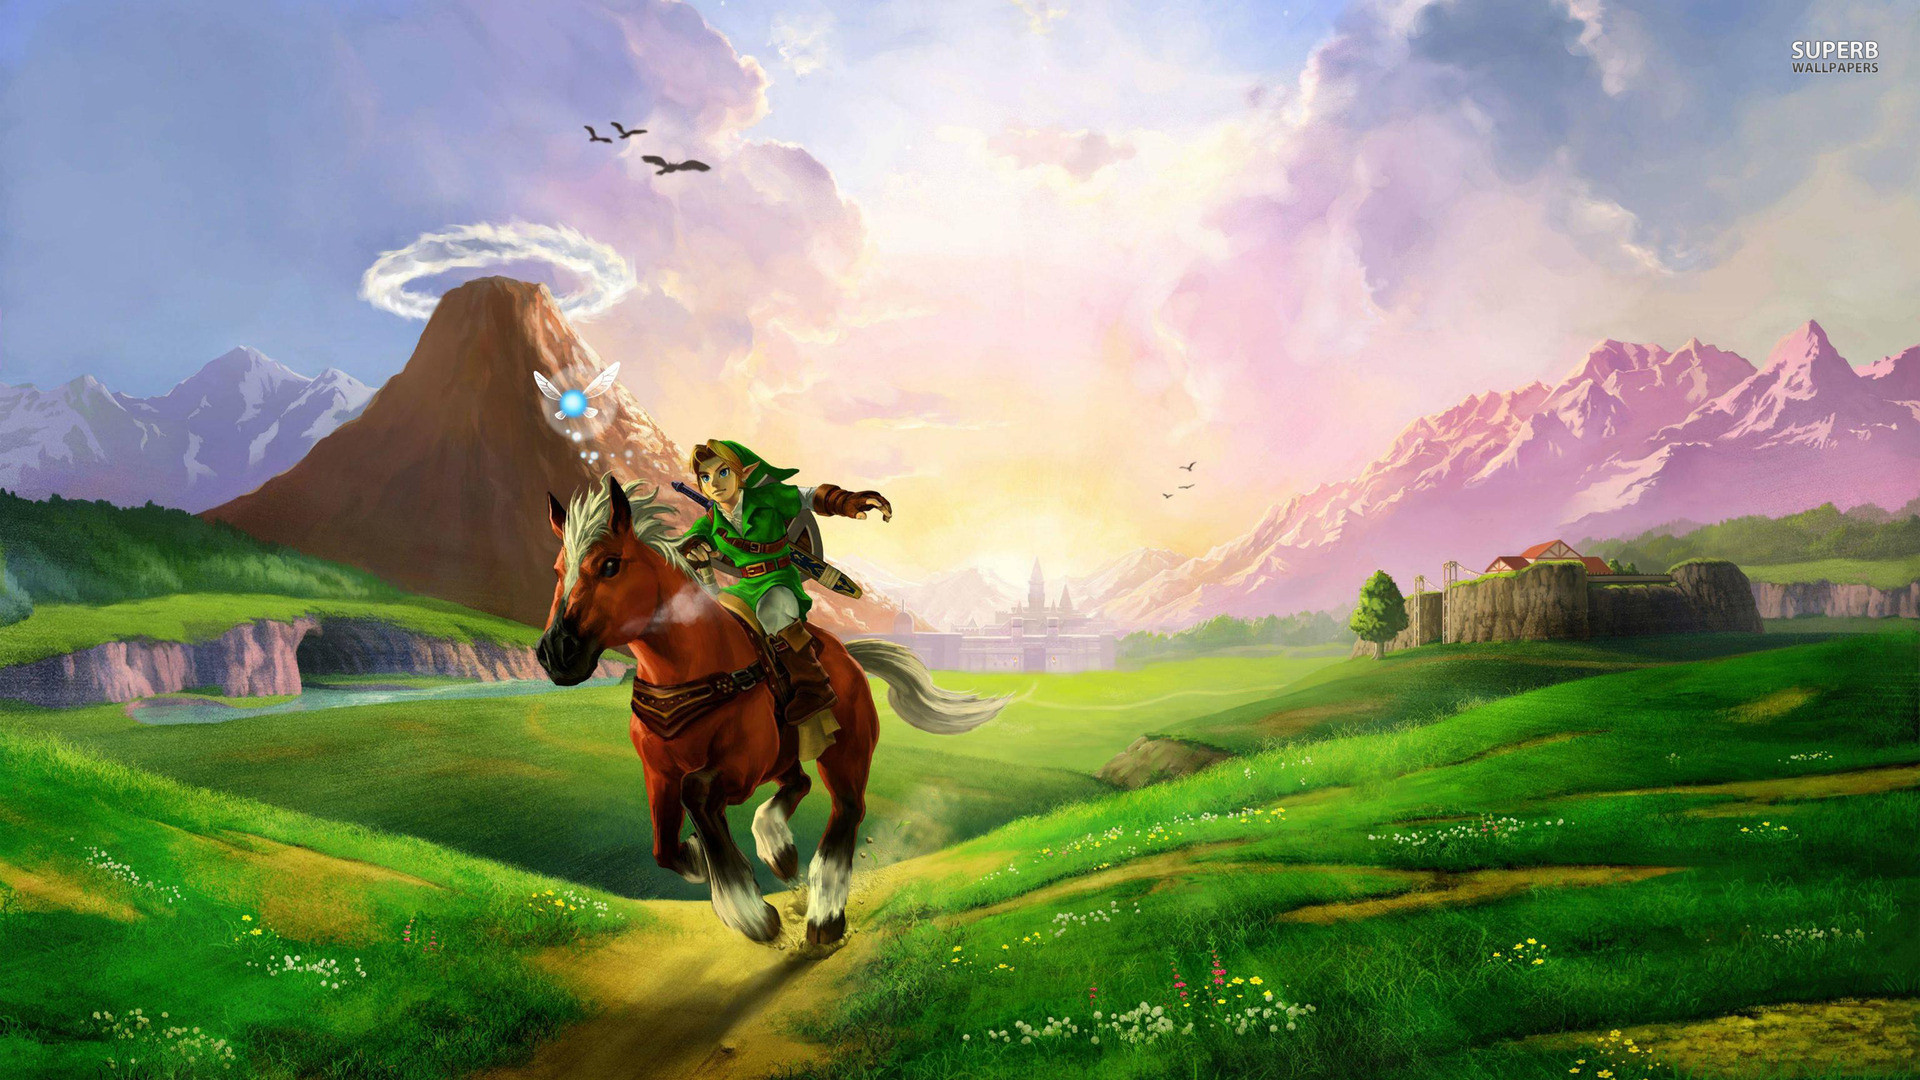 The Legend Of Zelda Ocarina Of Time Wallpapers (73 Wallpapers)